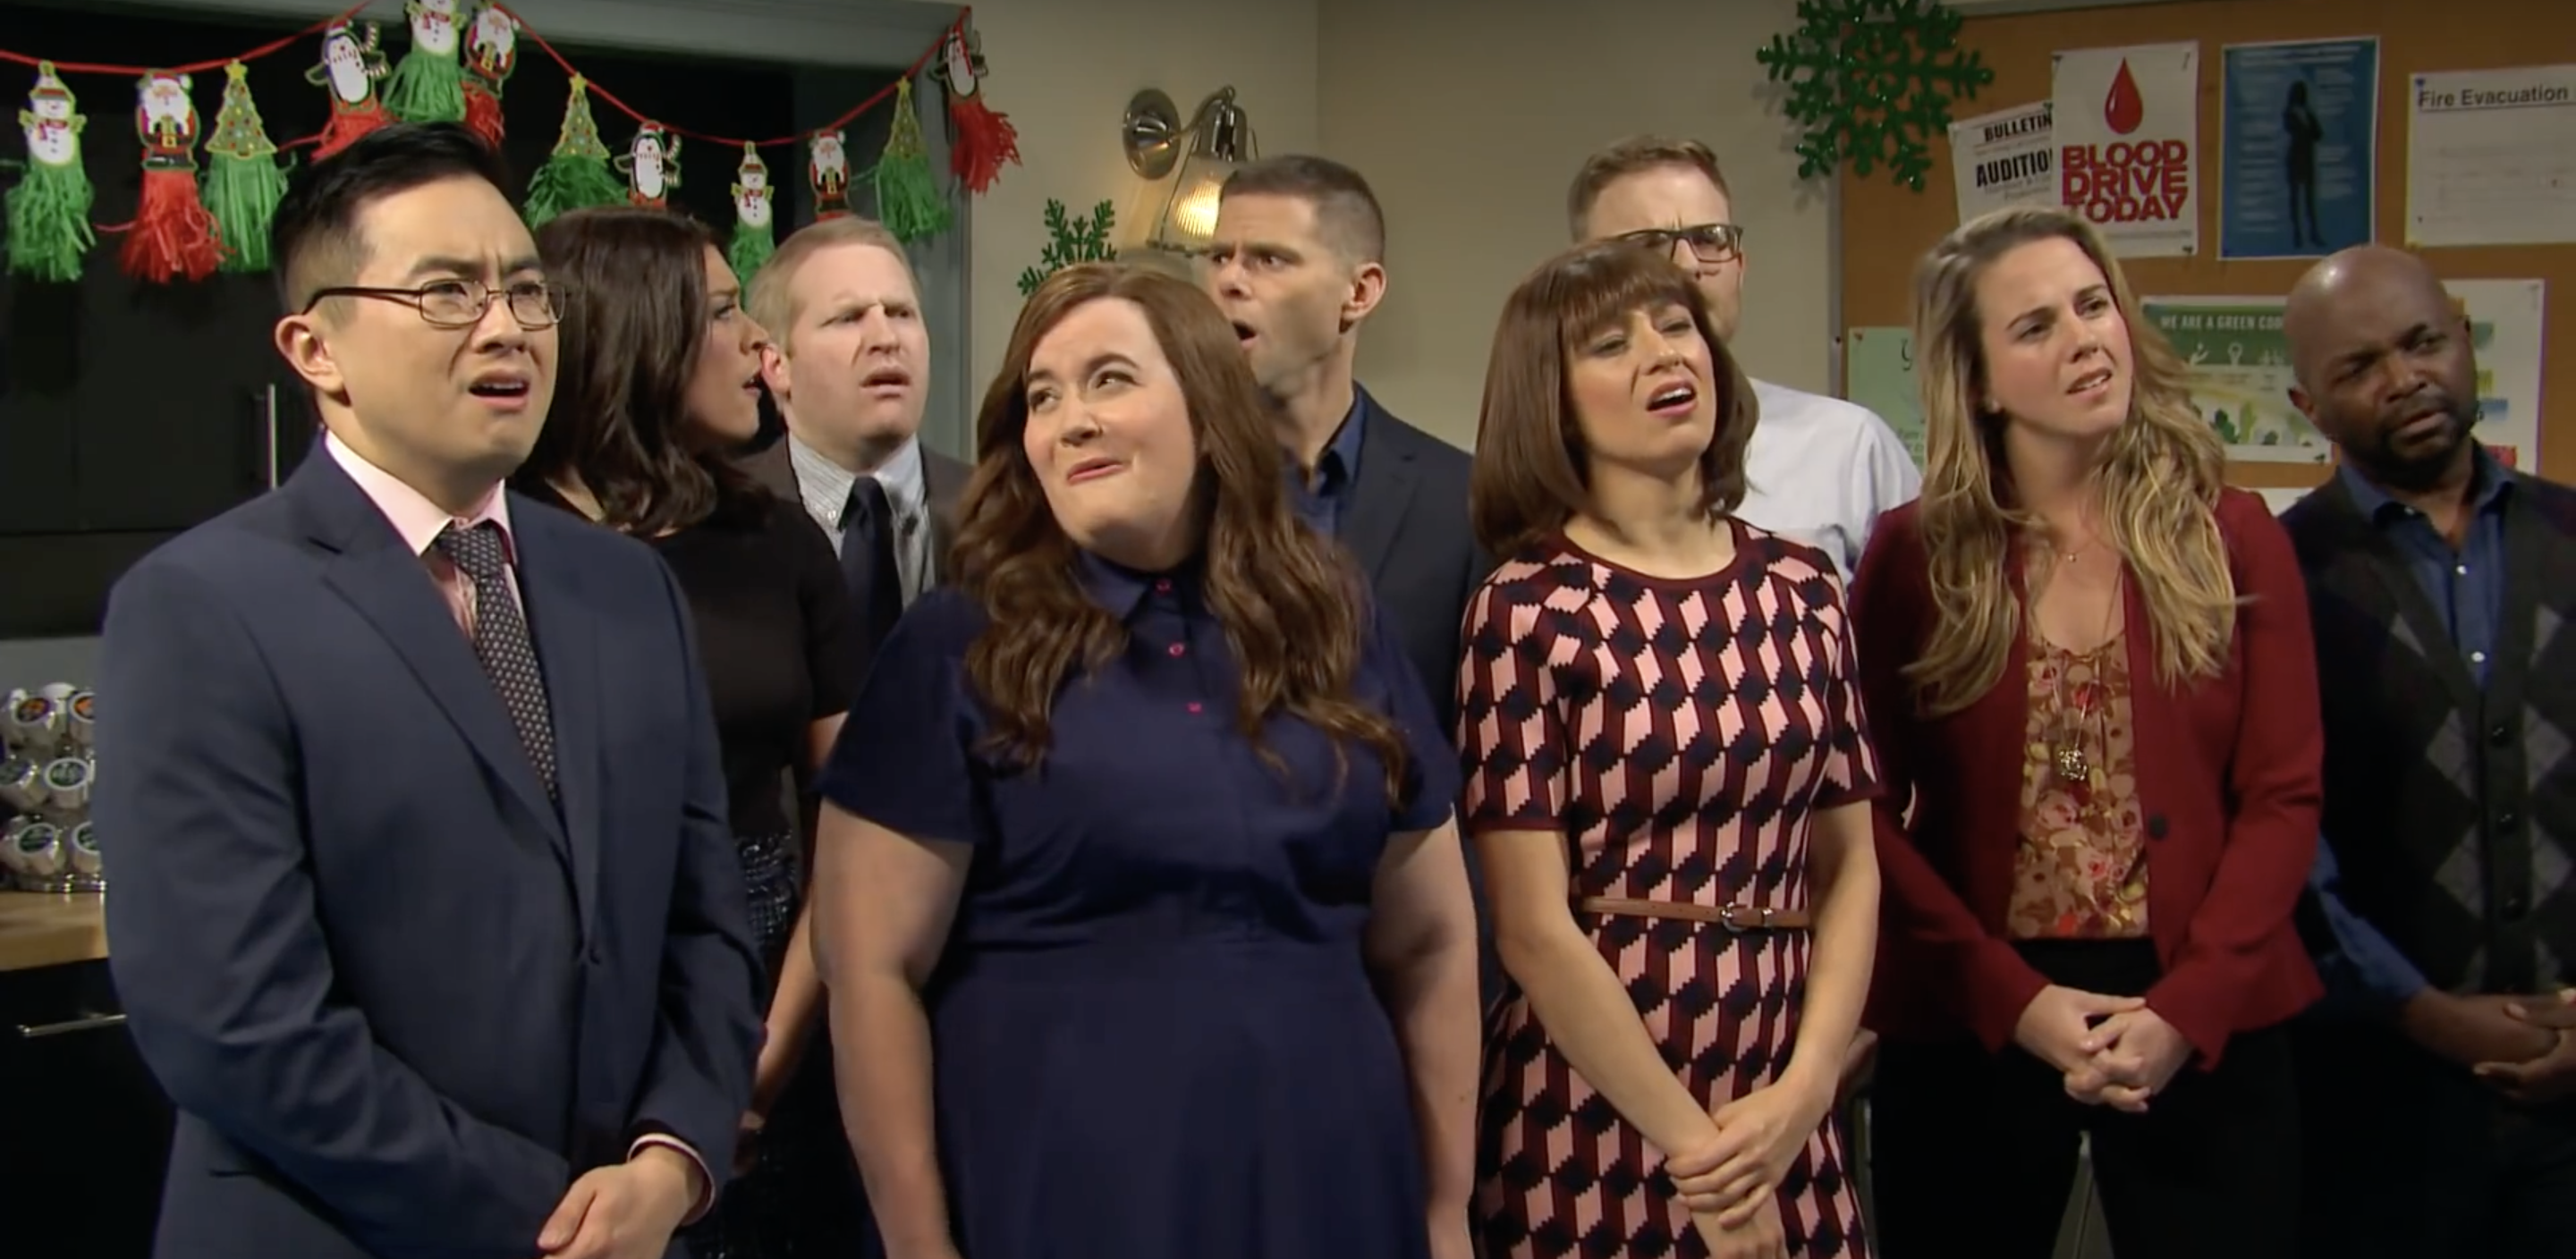 Two Office Employees Are Made To Apologize For Their Transgressions After A Holiday Party, Own Up But Miss...